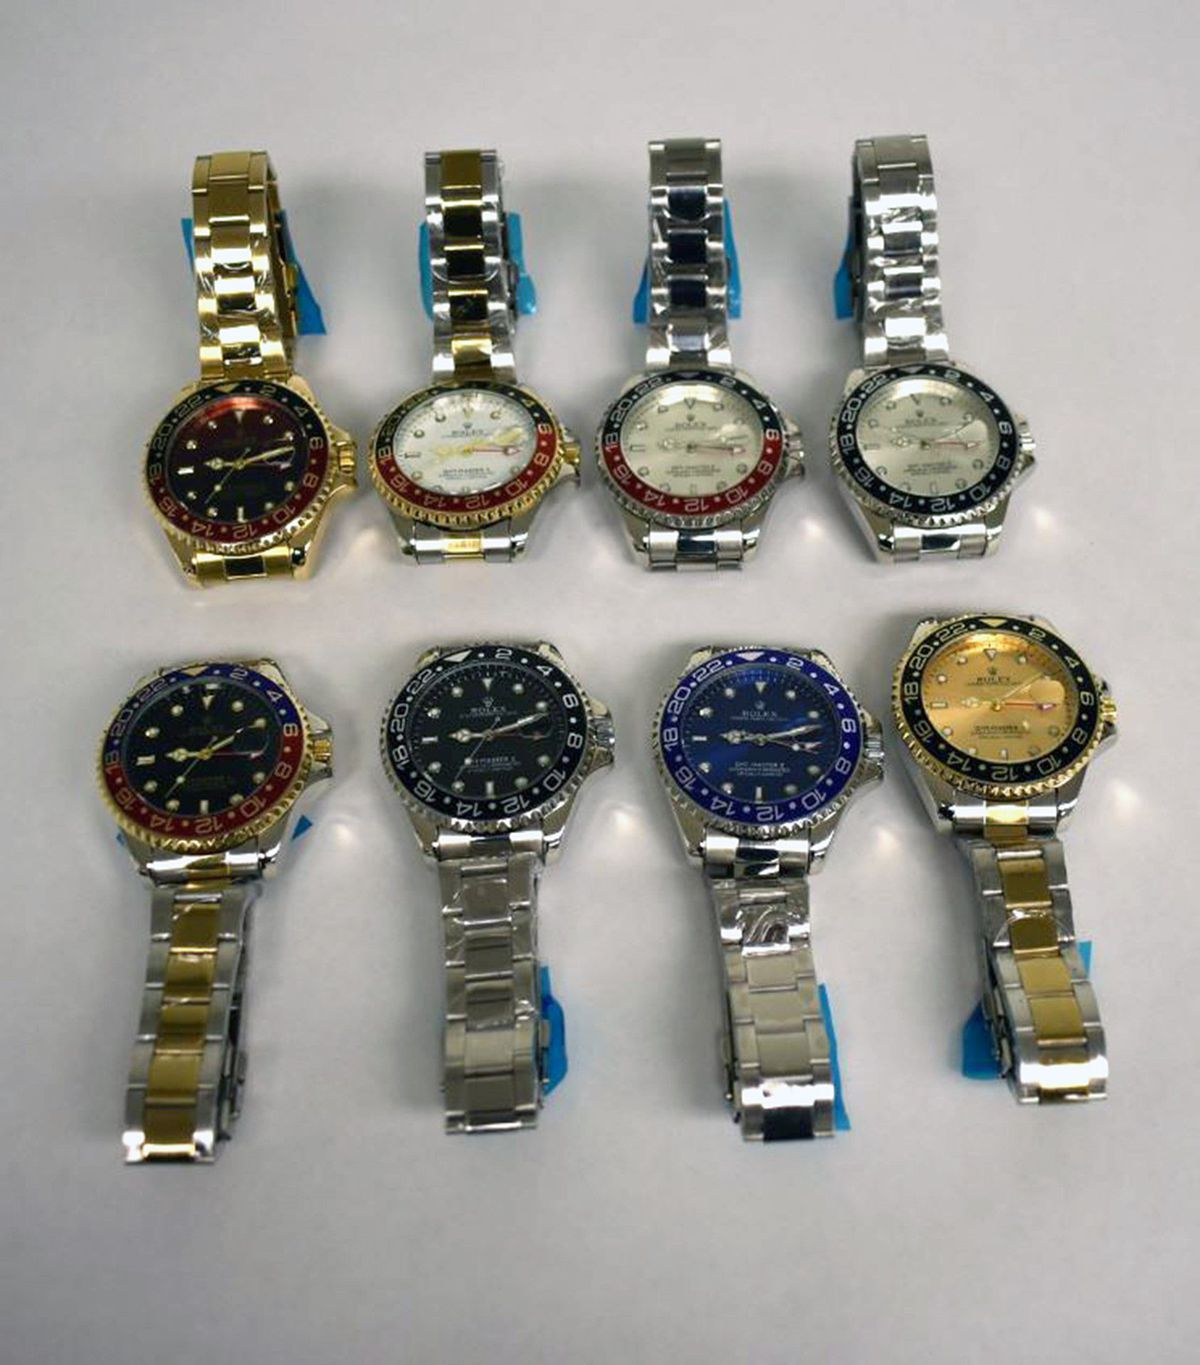 Fake Rolex watches worth $100K seized in Philly